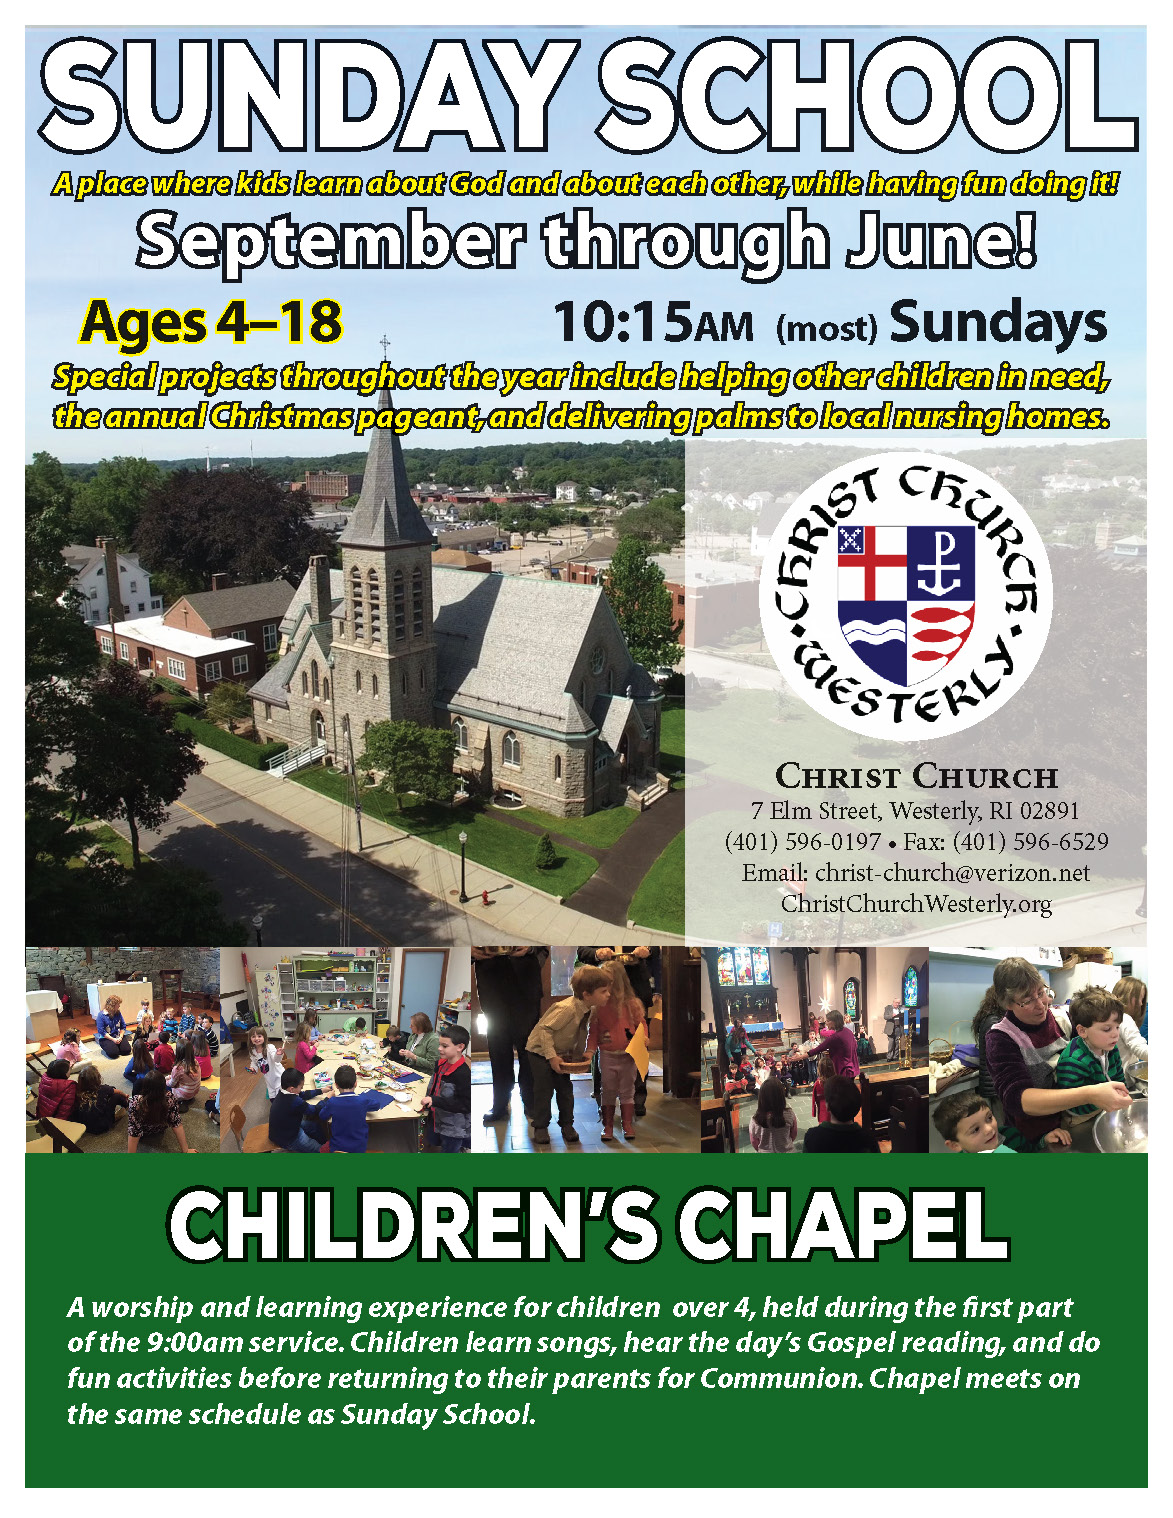 Christ Church Sunday School poster 9-18.jpg